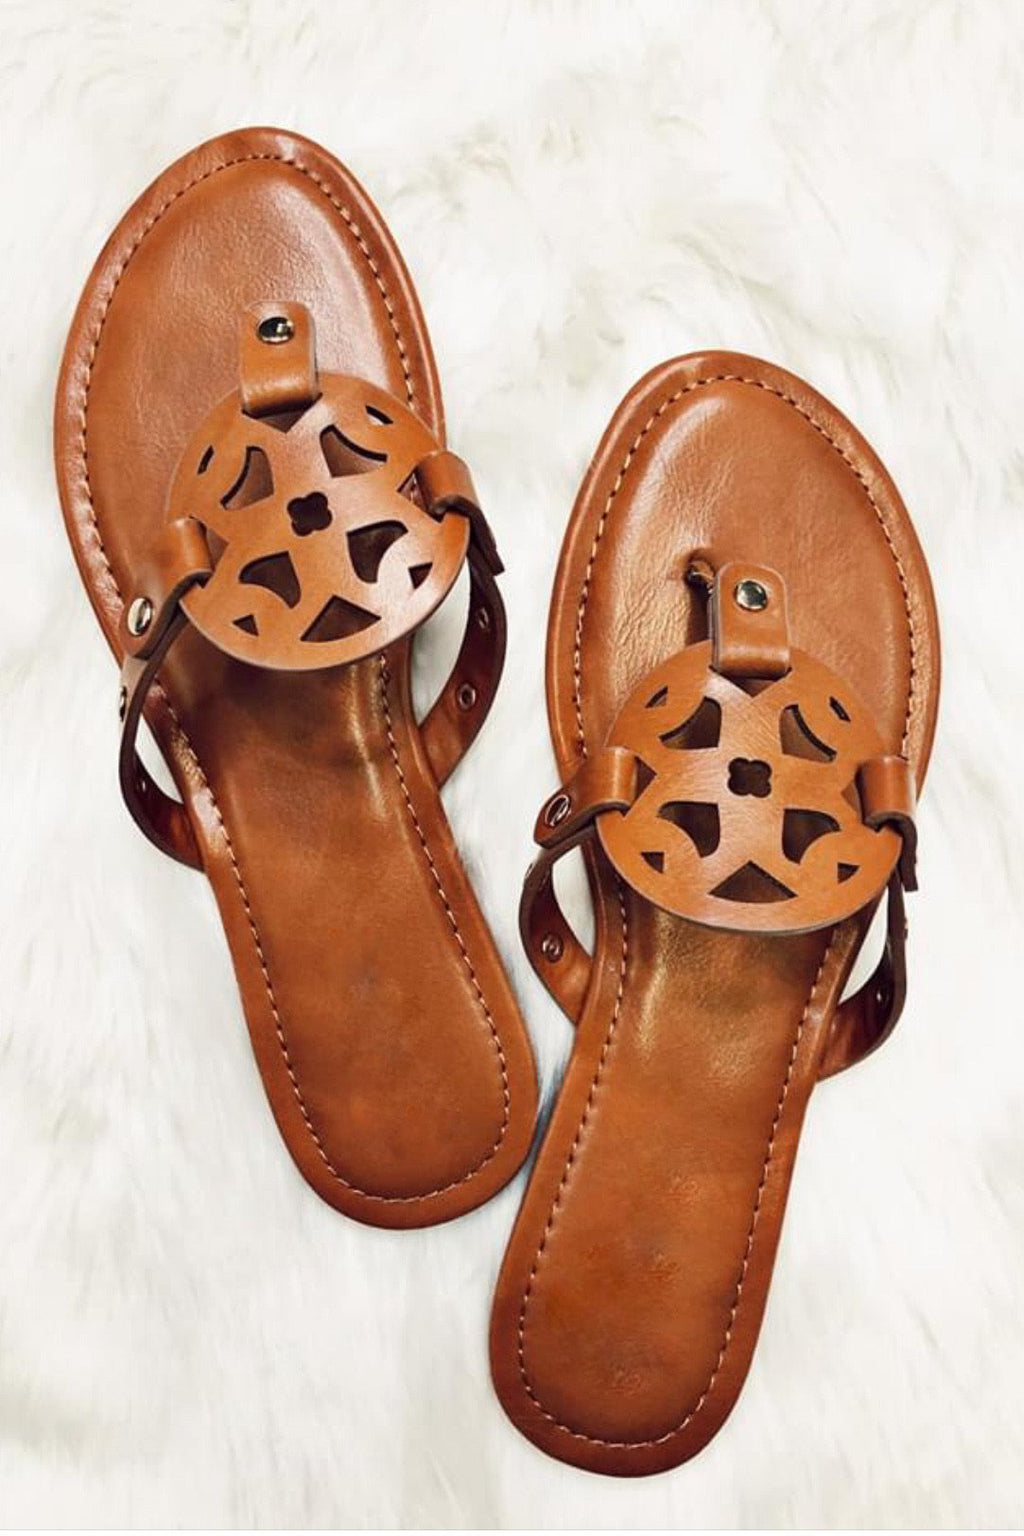 The Naples Studded Sandals